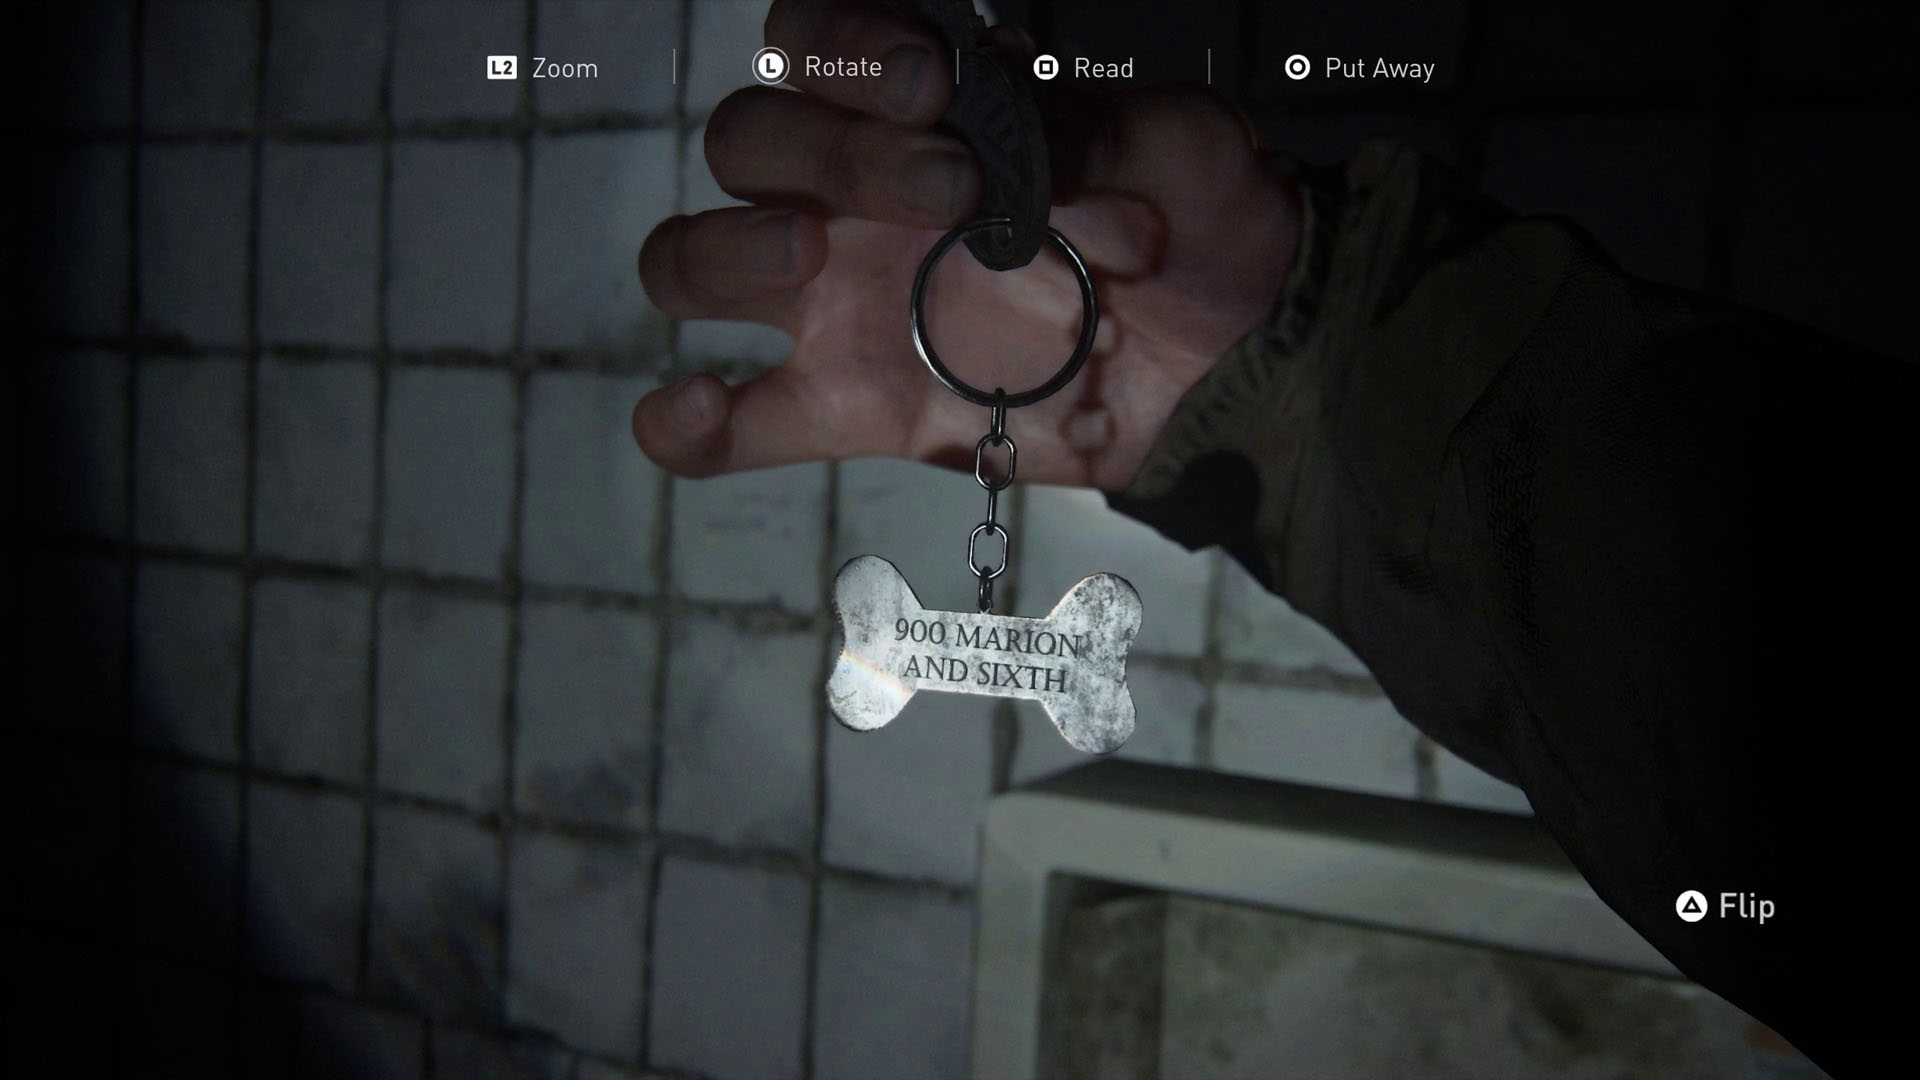 The Barkos Key in The Last of Us Part 2